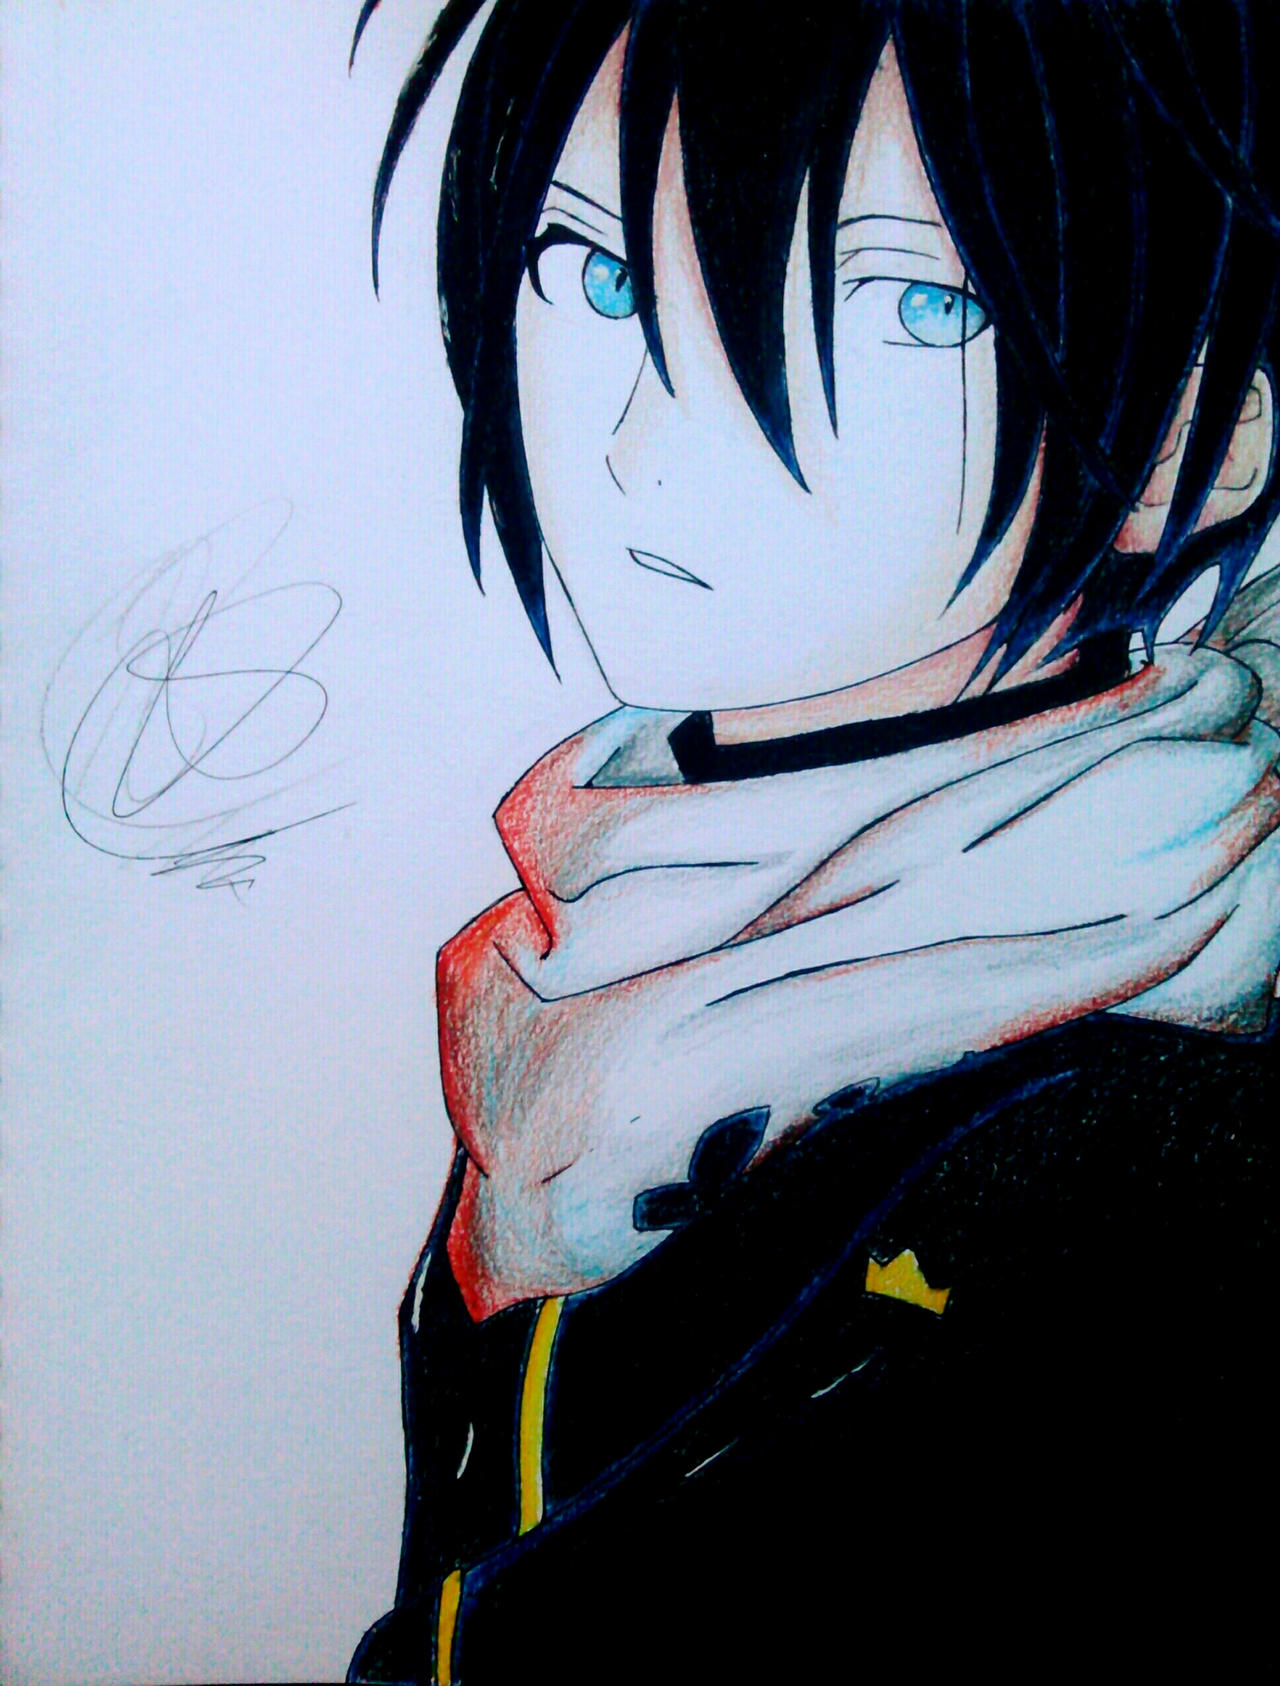 Yato(NORAGAMI) by styledsilver on DeviantArt